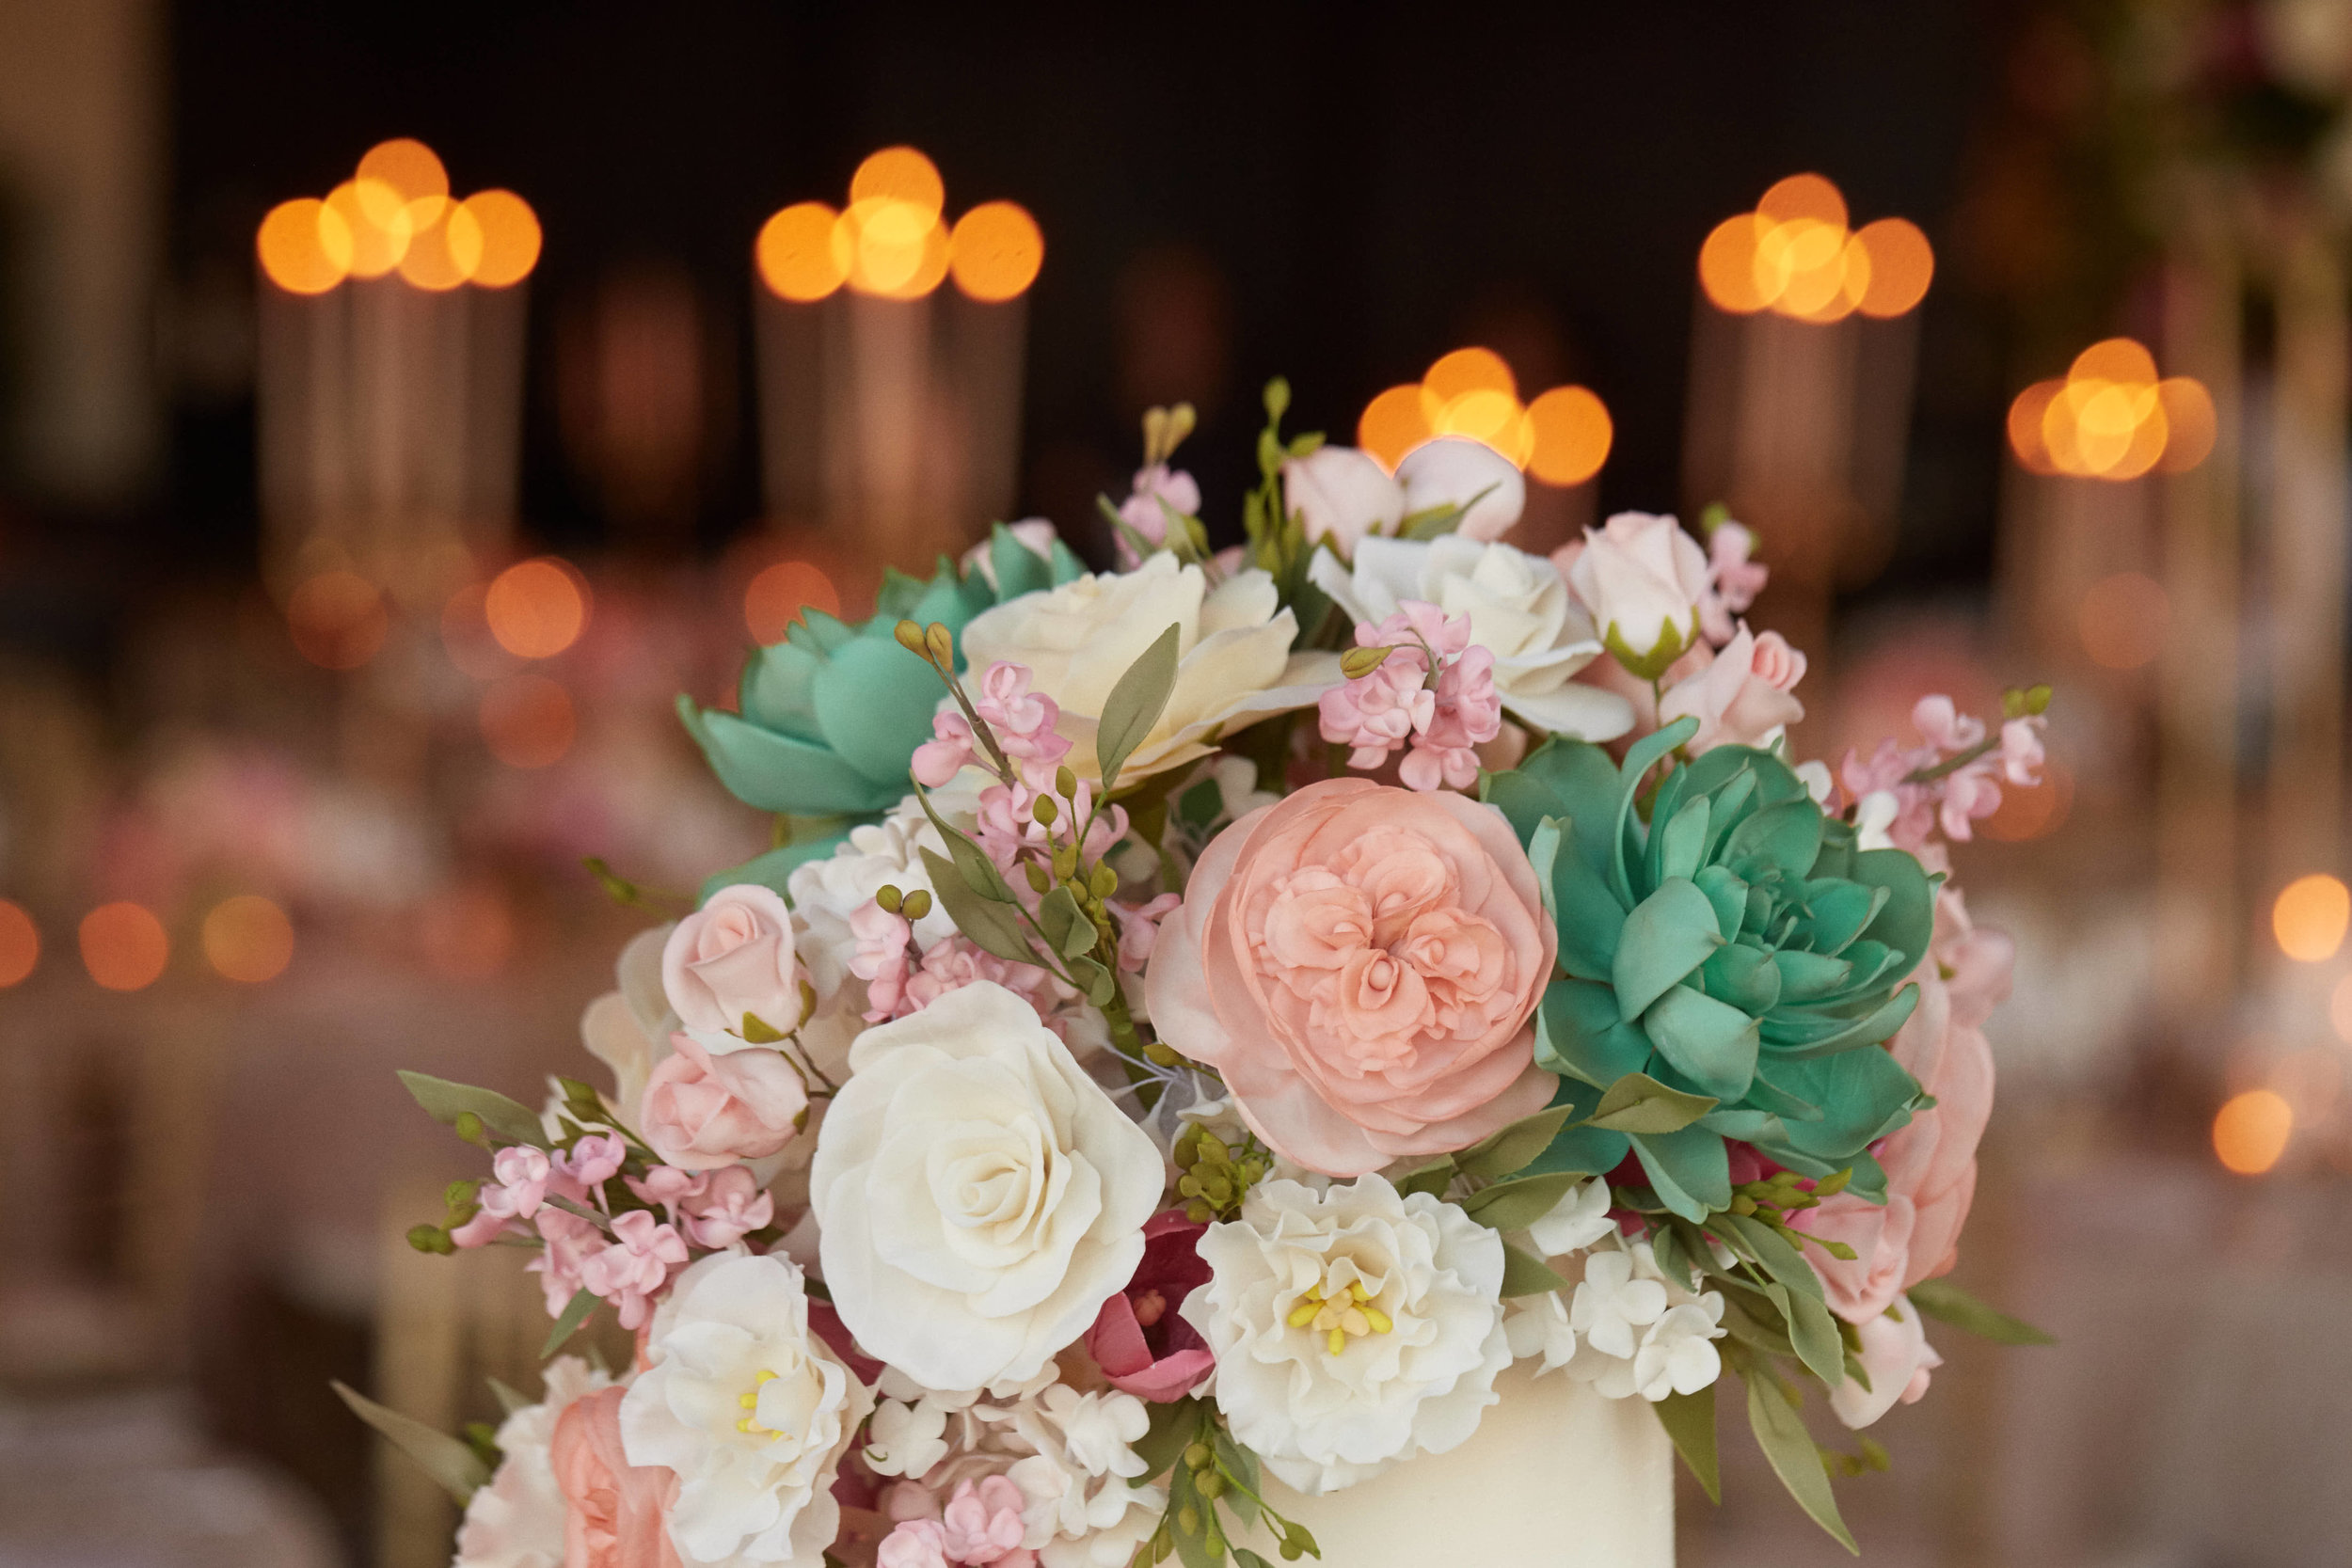 Copy of Michelle and Chris - Whyman Studios - Pink Bowtie Events740.jpg